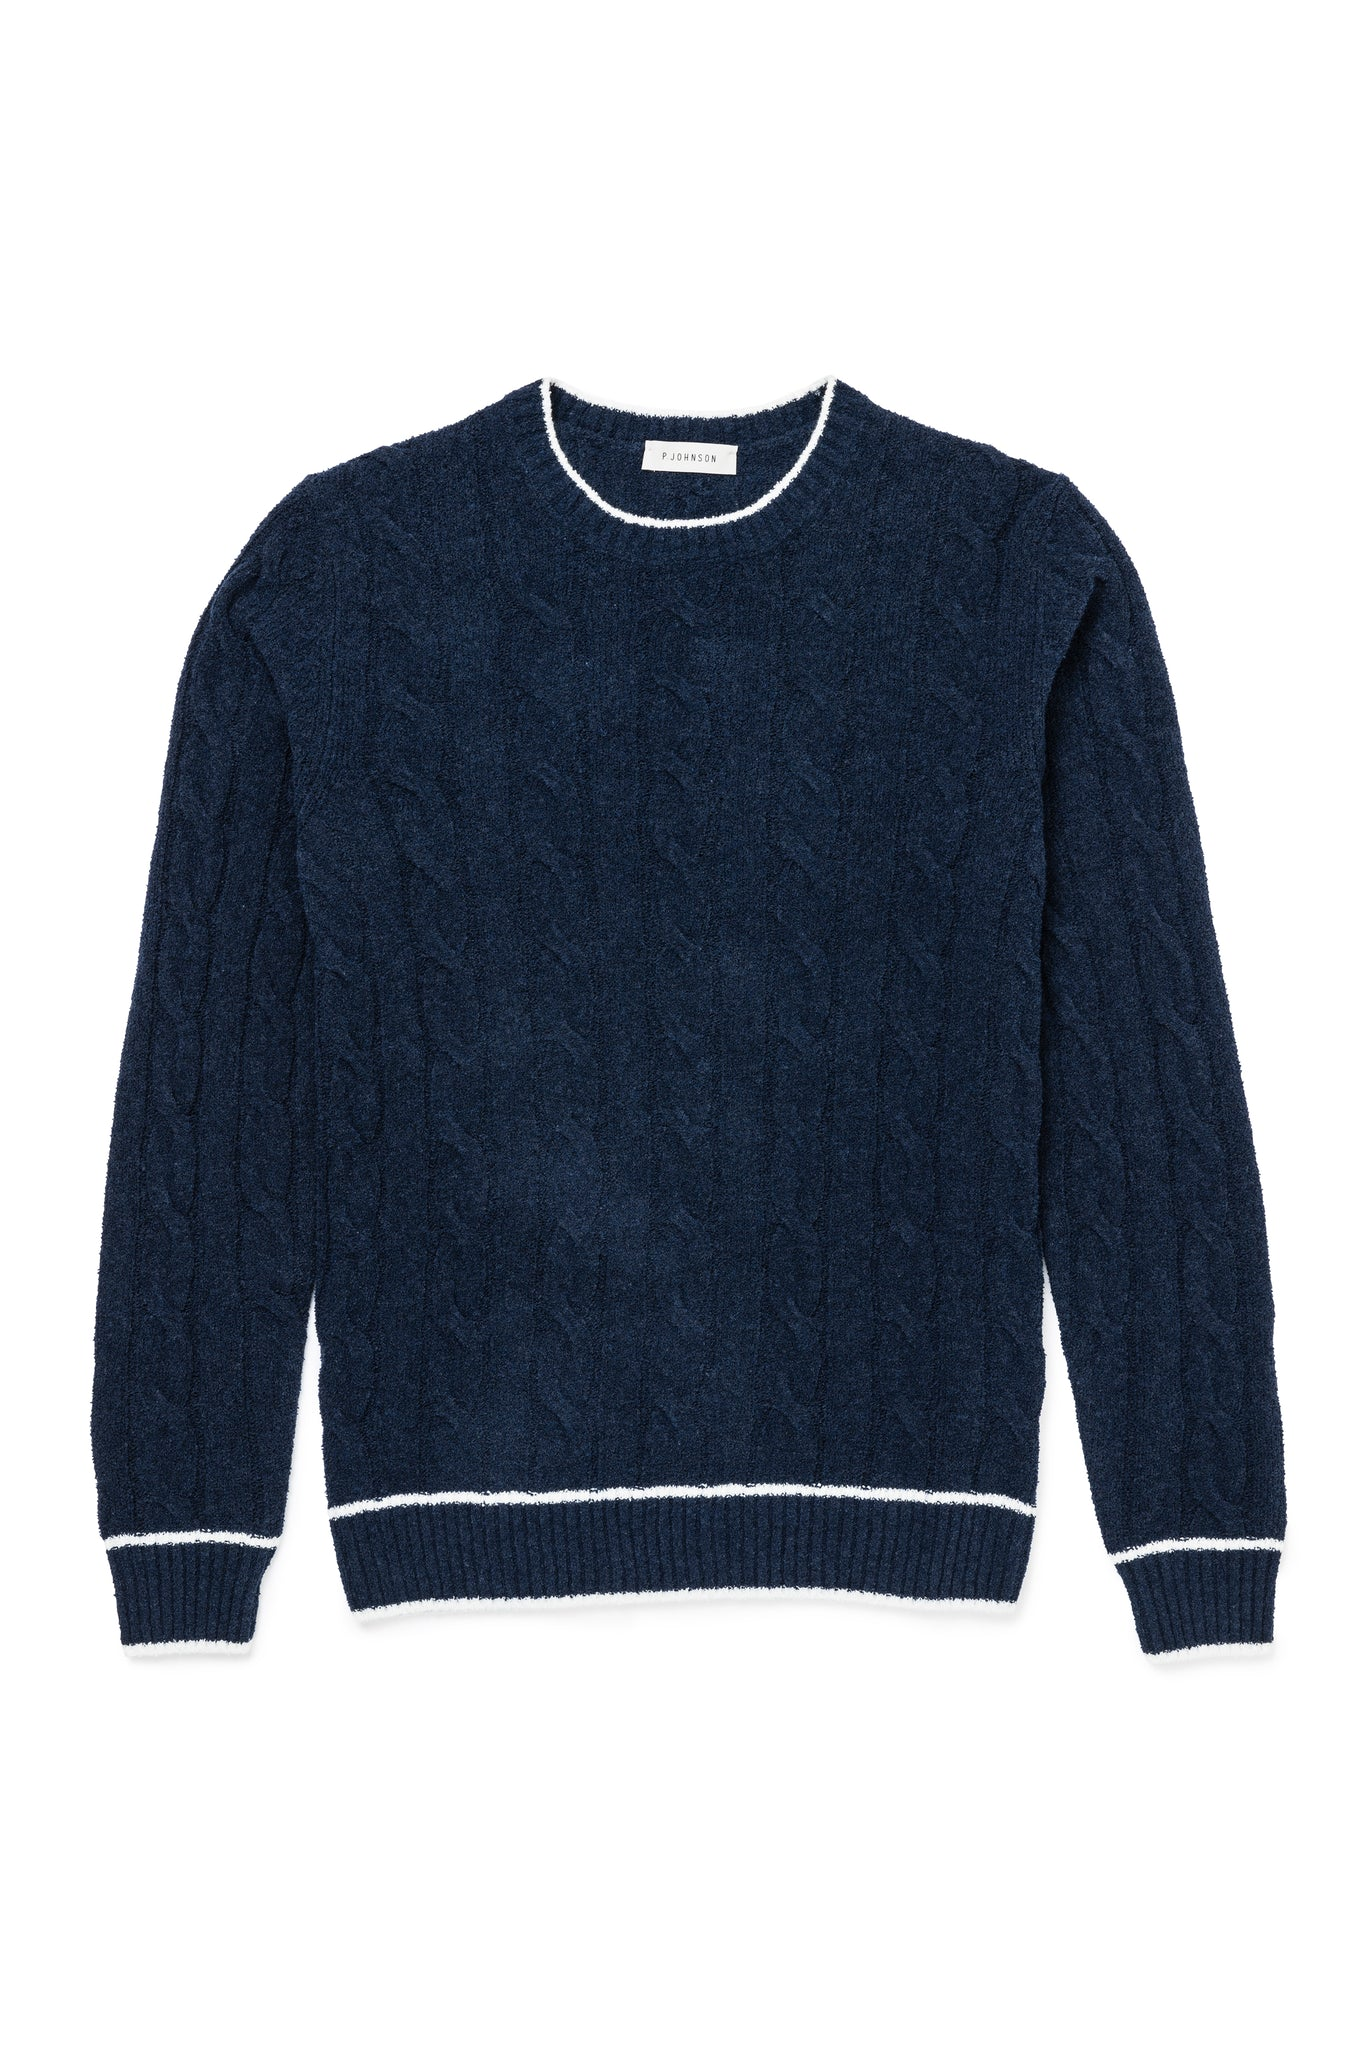 Navy Cricket Sweater